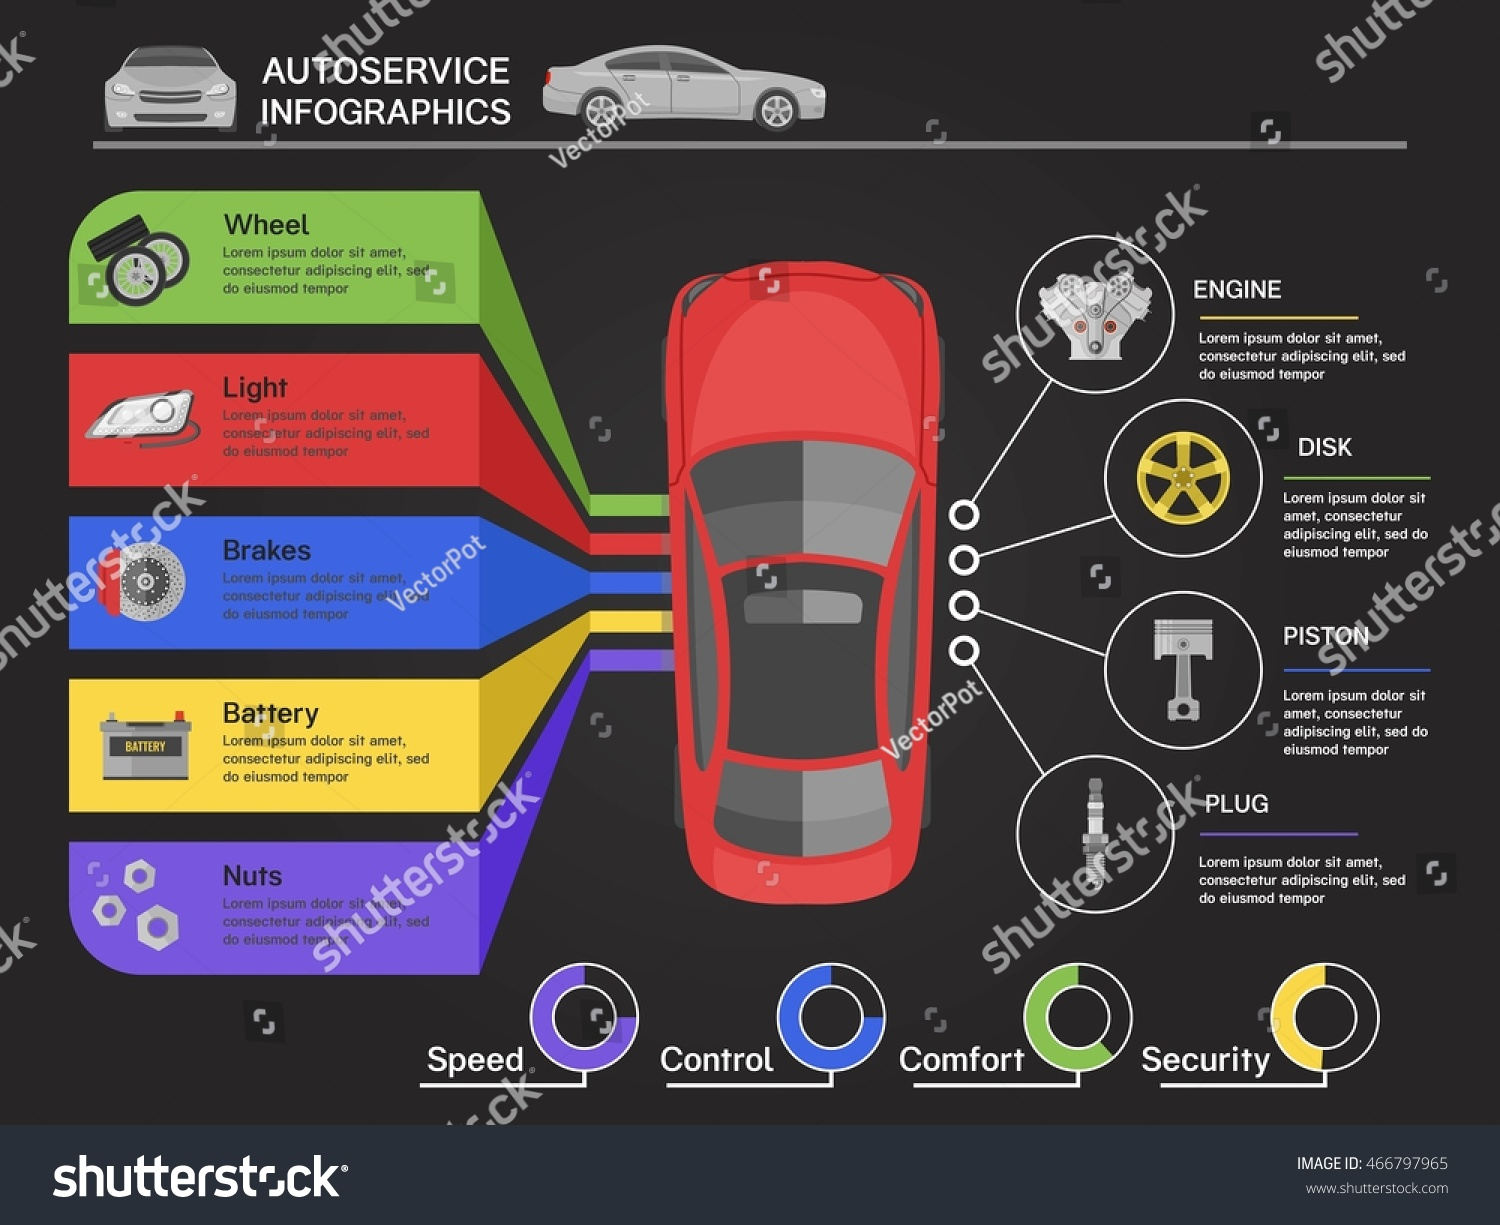 Auto Service Infographics Car View Top Stock Vector Royalty Free Diagrams With Of From Machine Details On Black Background